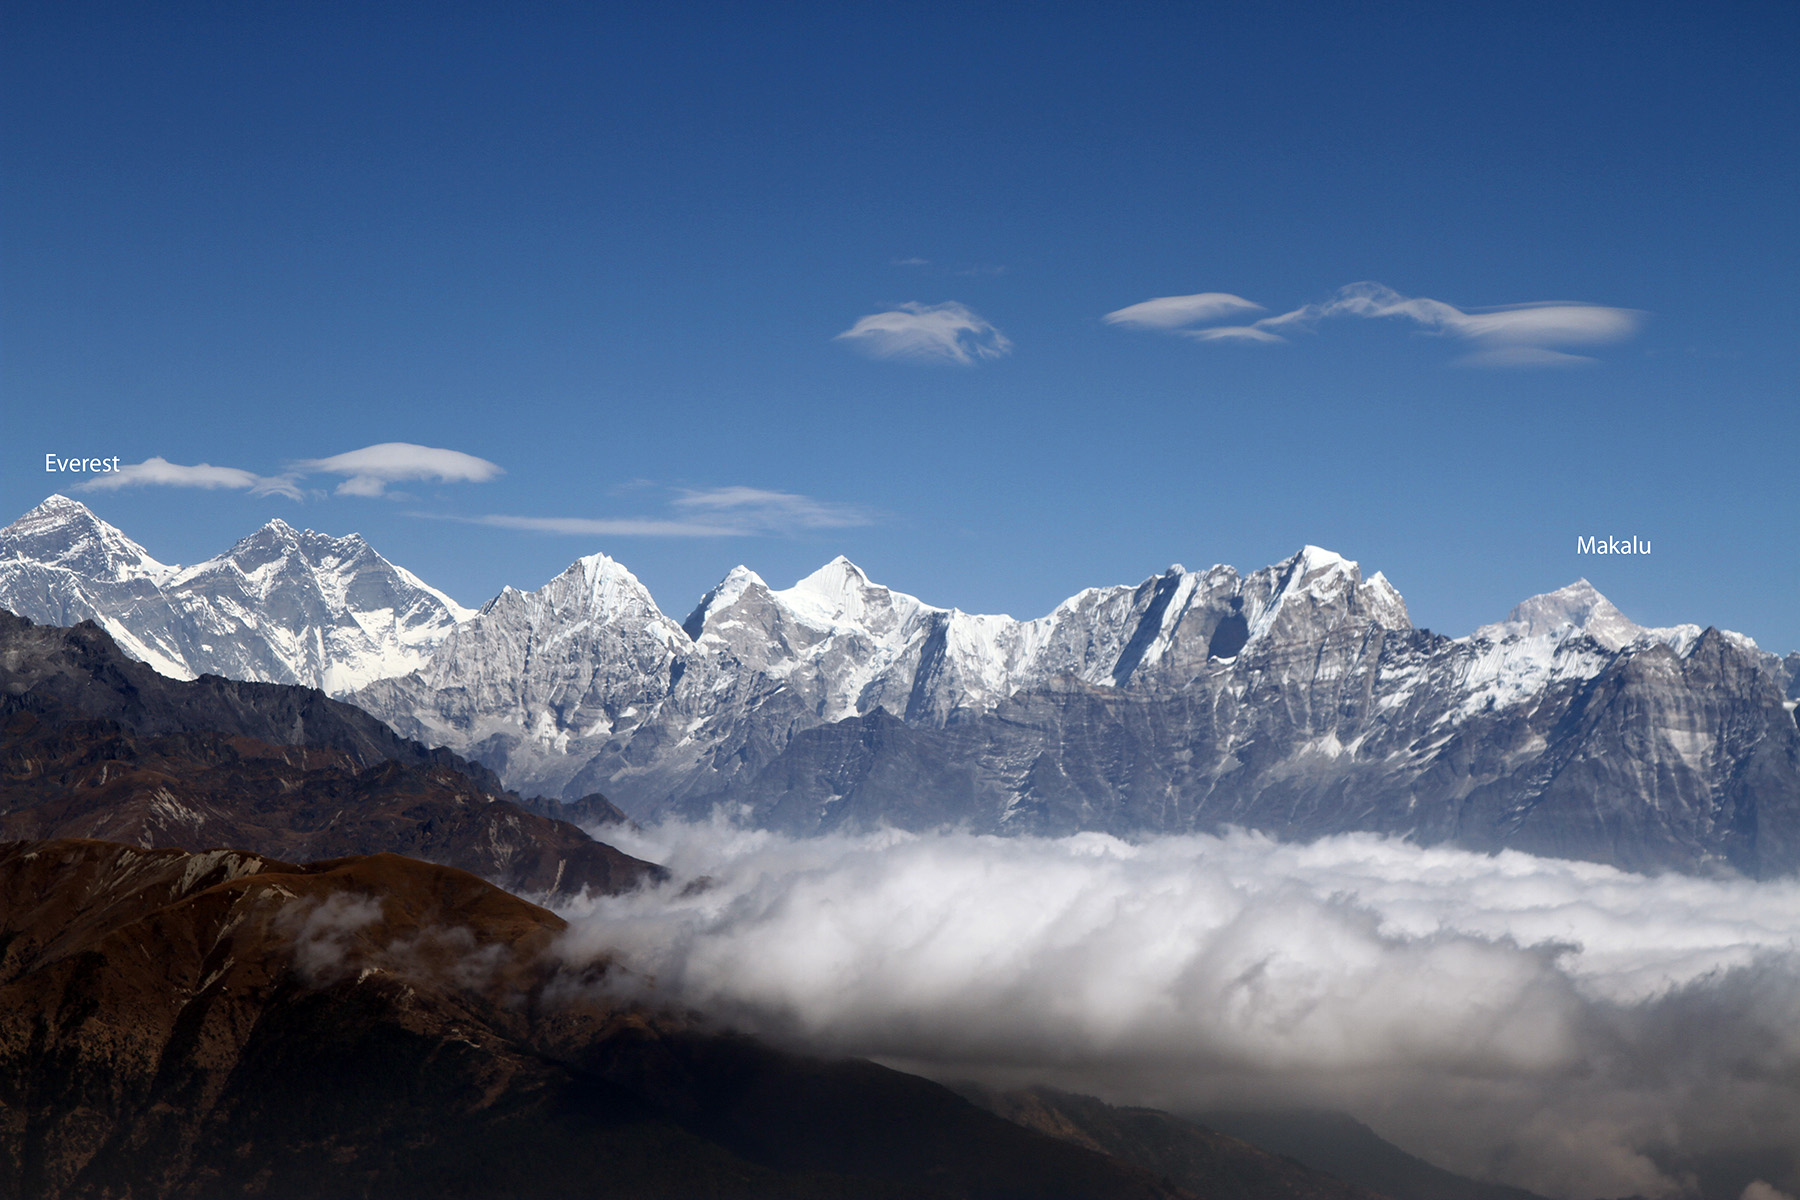 Makalu and Everest from Pikey